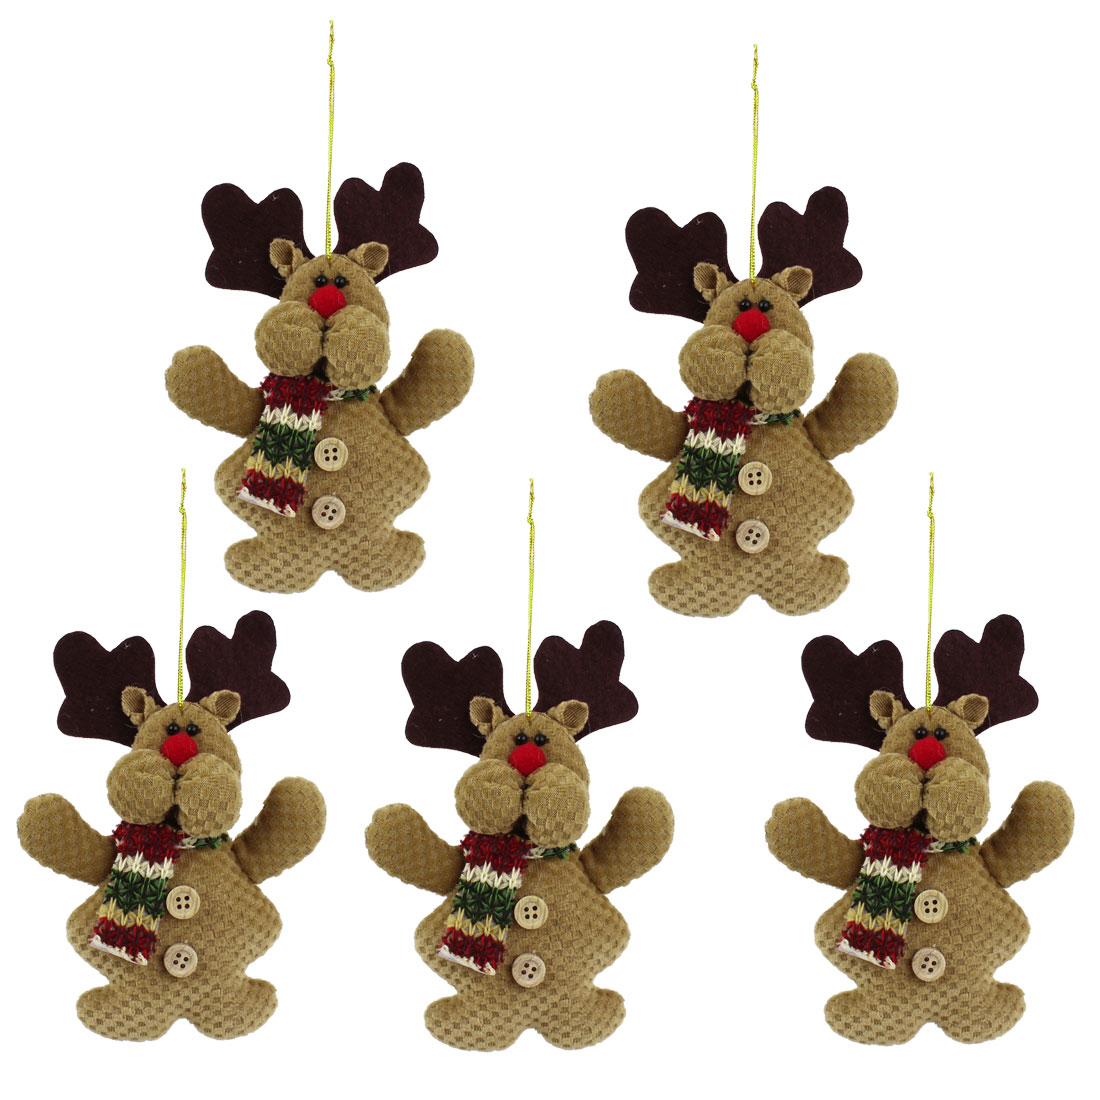 5pcs Knitware Scarf Accent Xmas Reindeer Pendant Coffee Color for Door Christmas Tree Hanging Decor